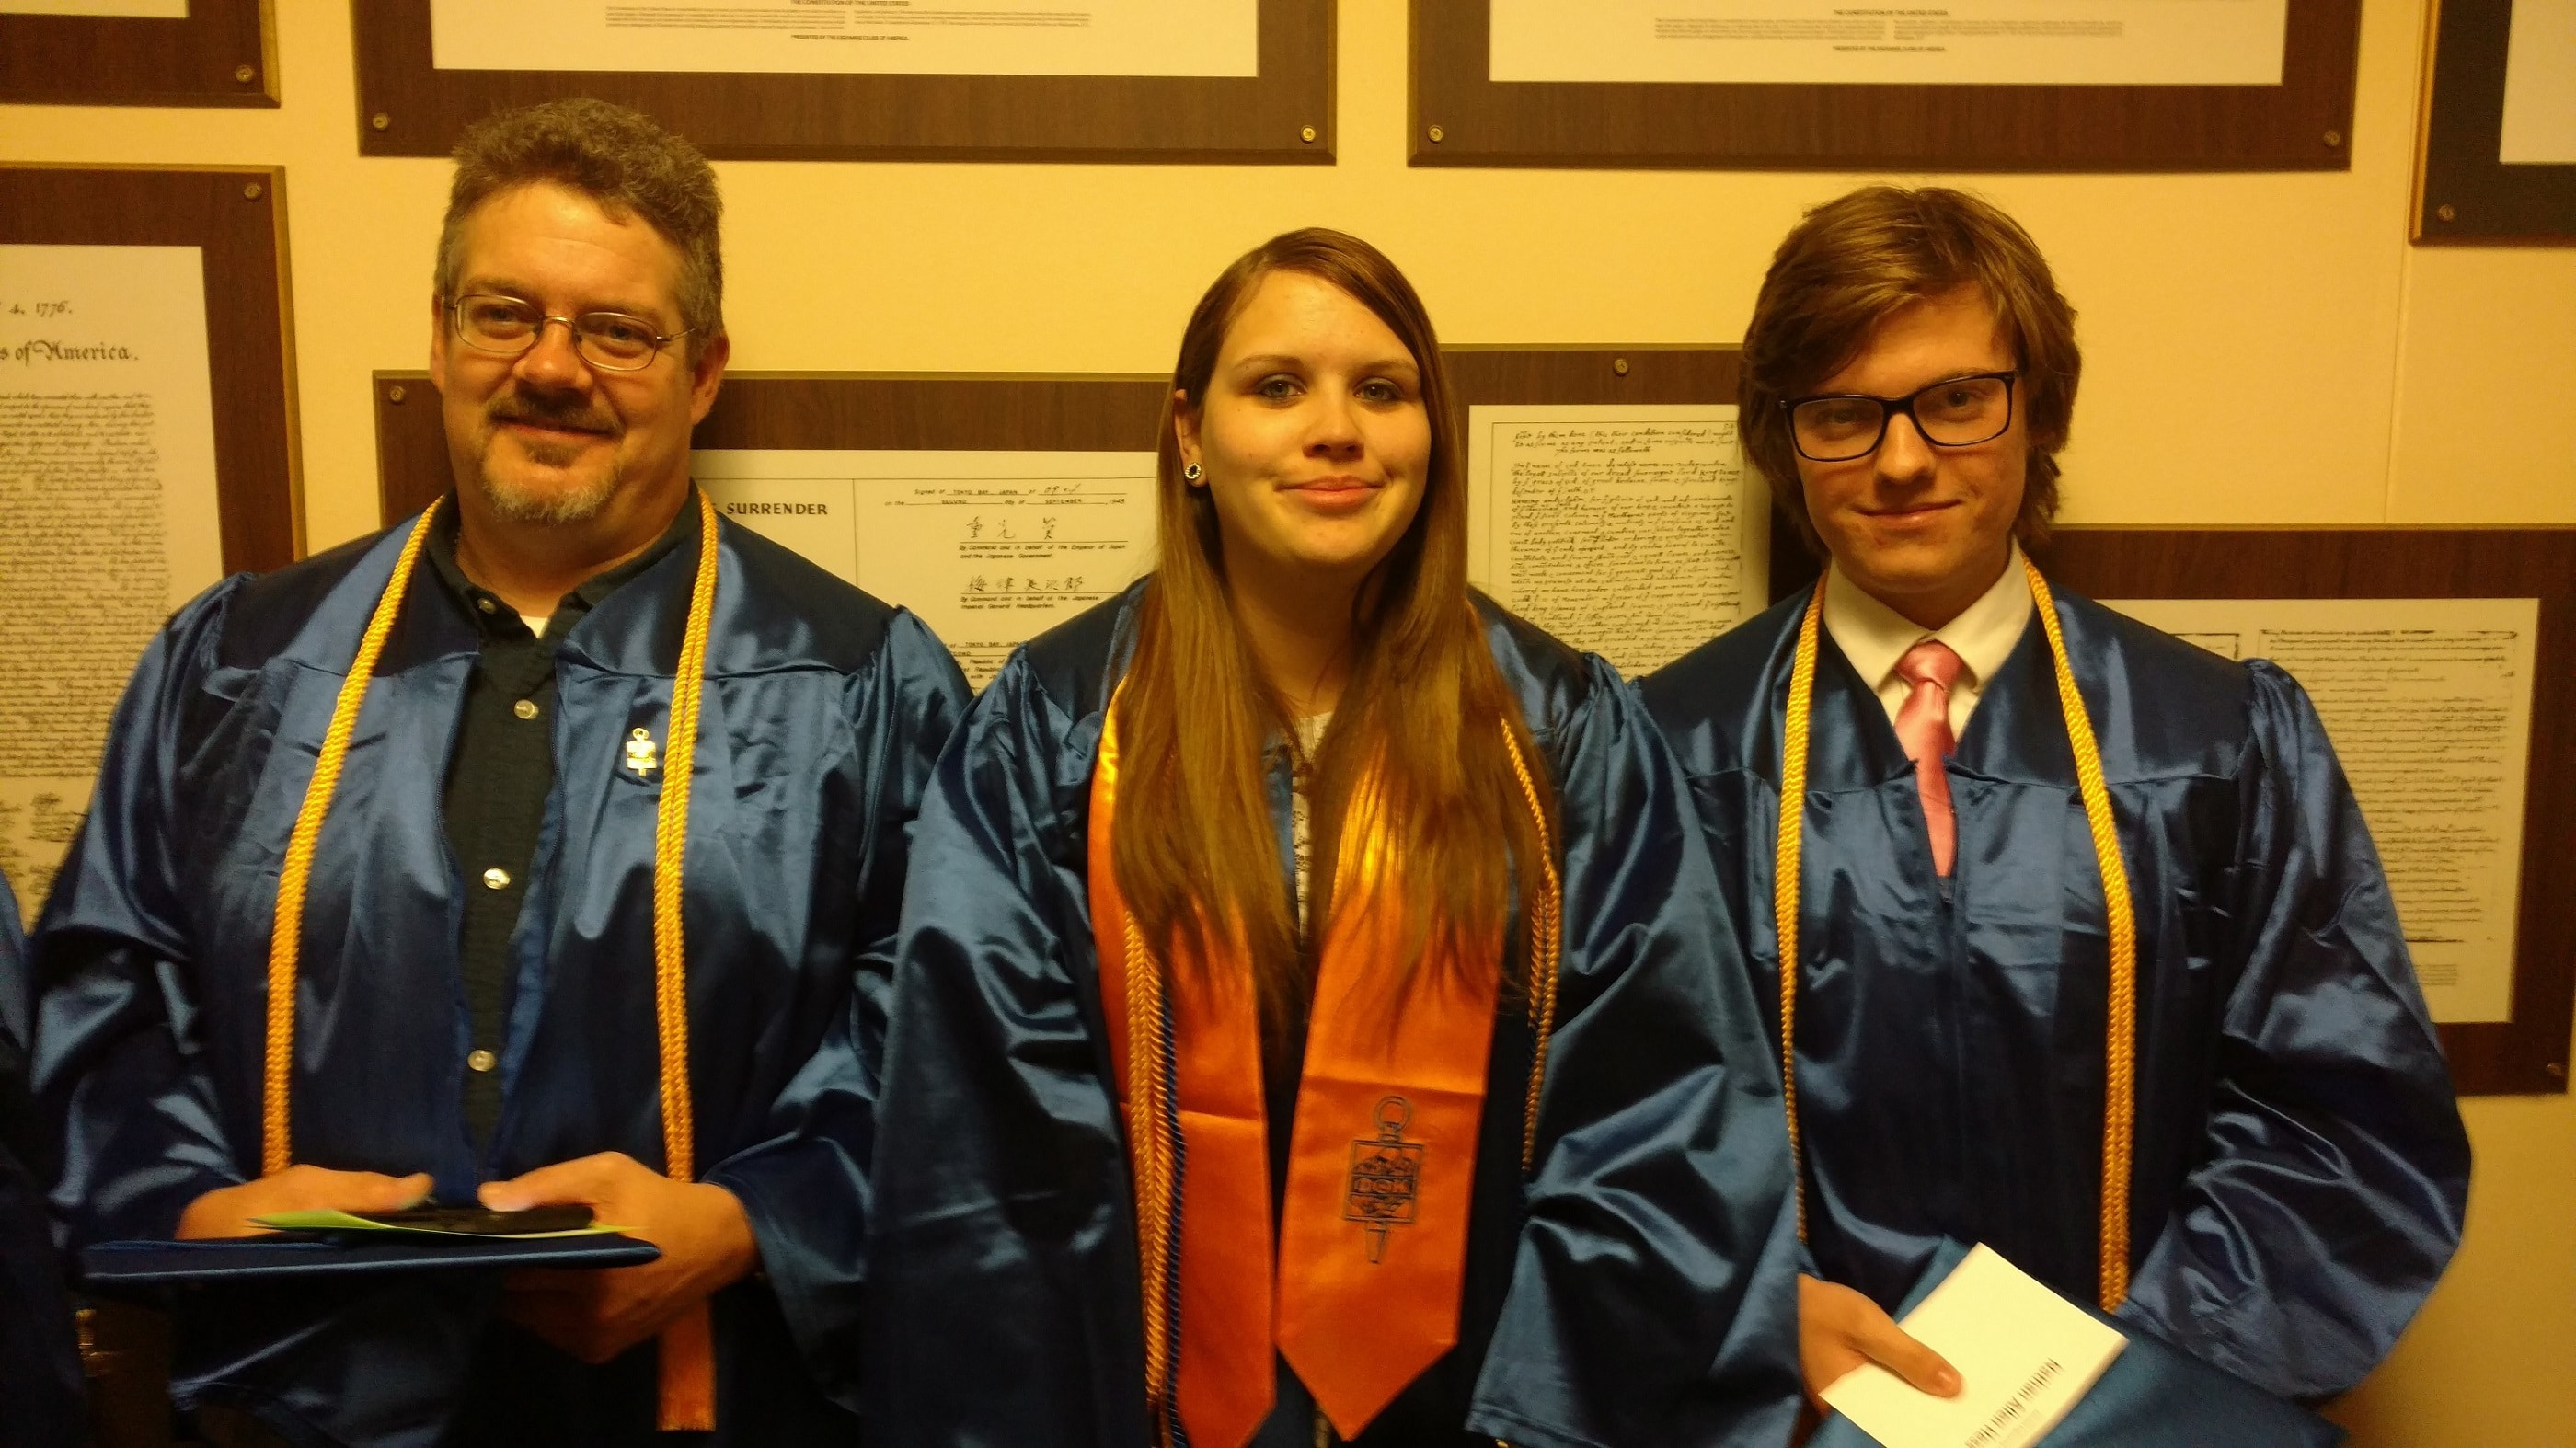 Three civil engineering students stand in graduation cap and gowns